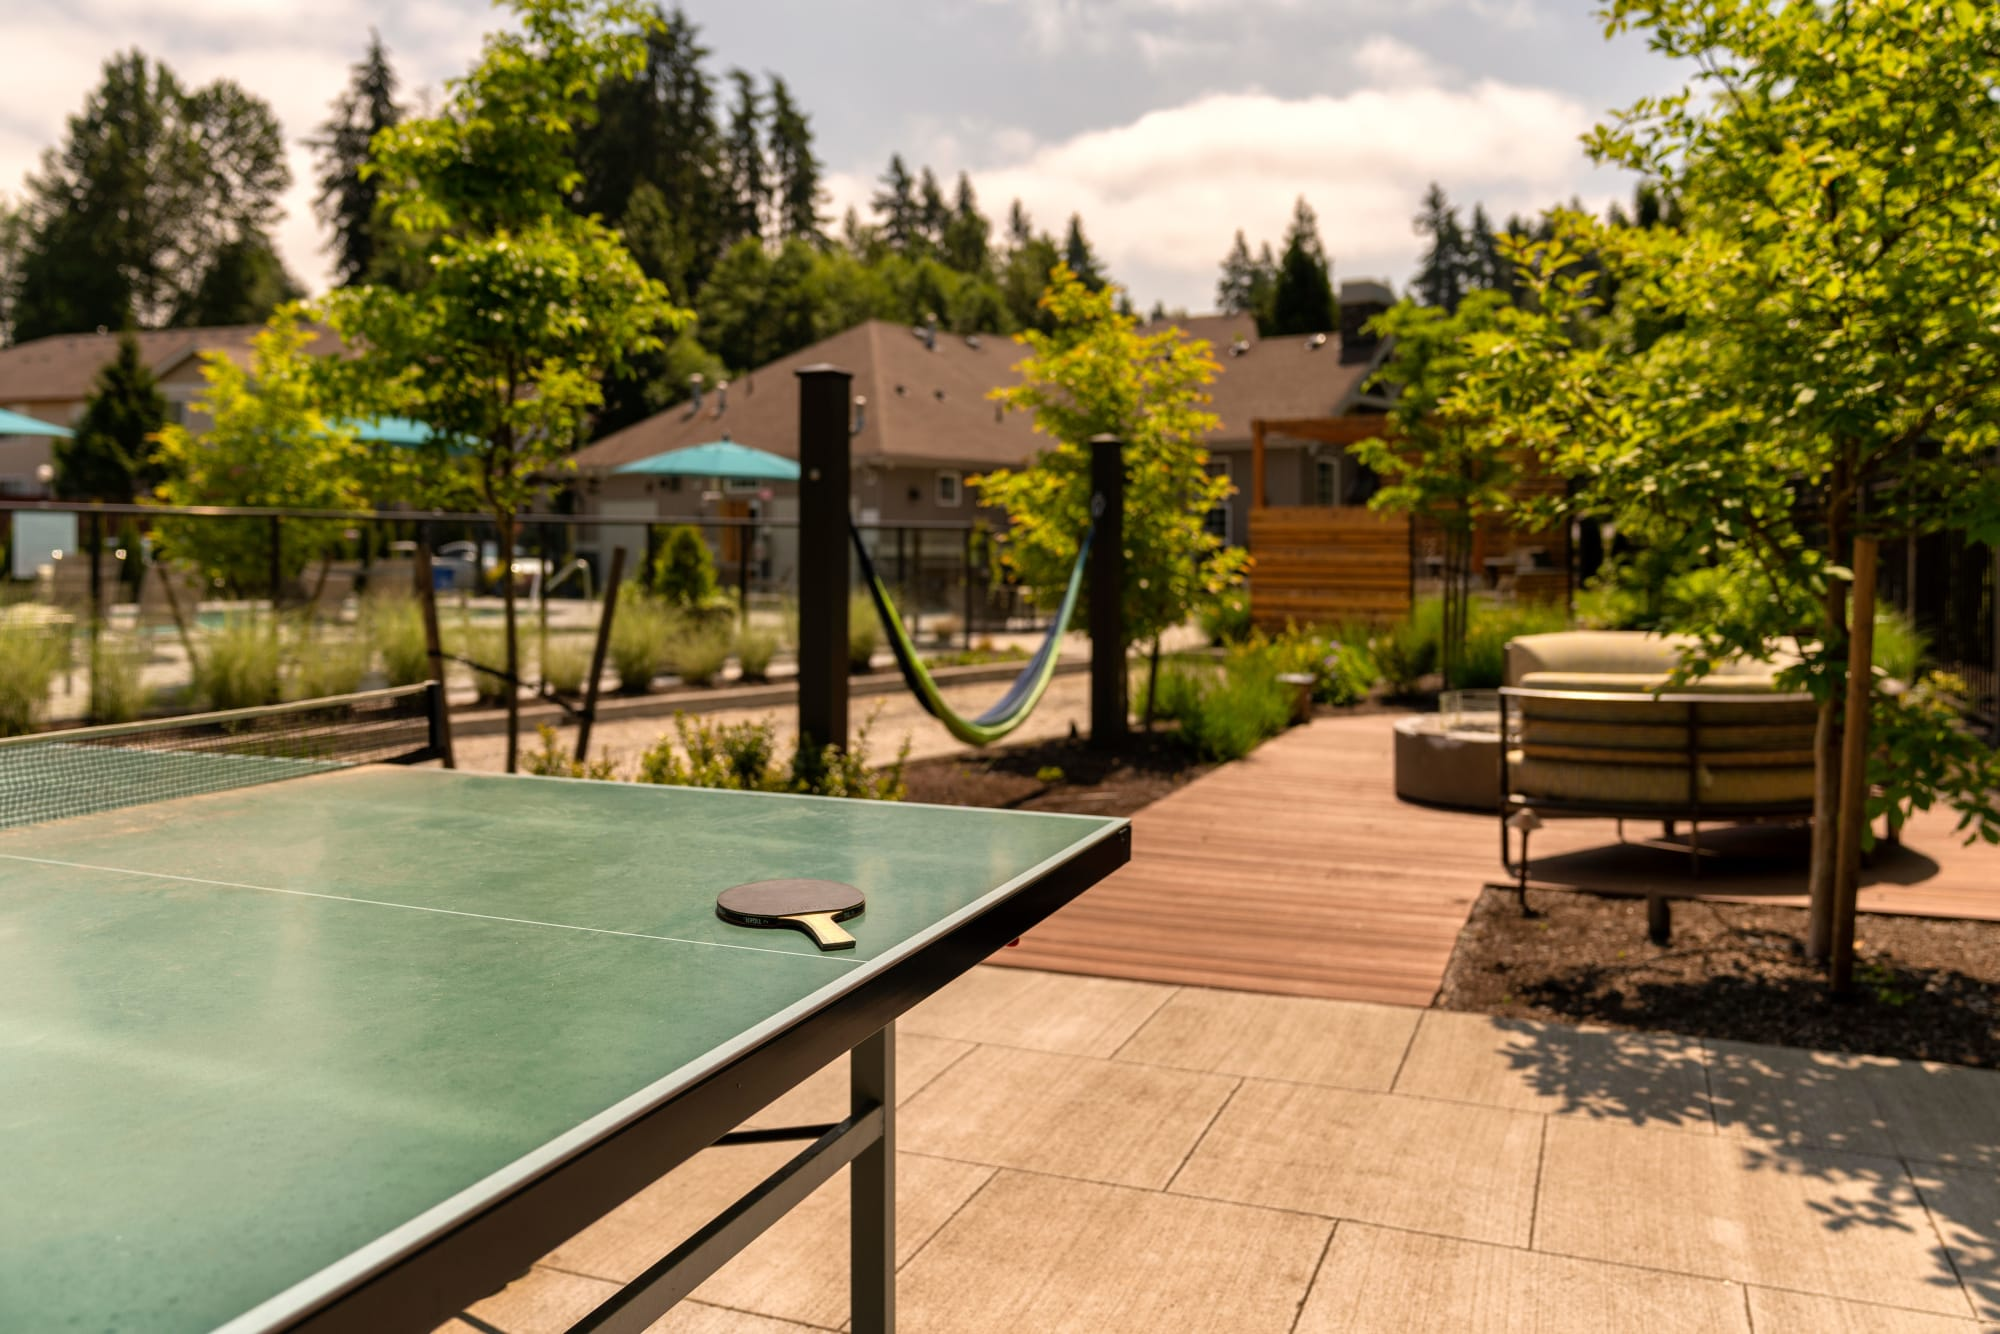 A ping pong table at Brookside Village in Auburn, Washington